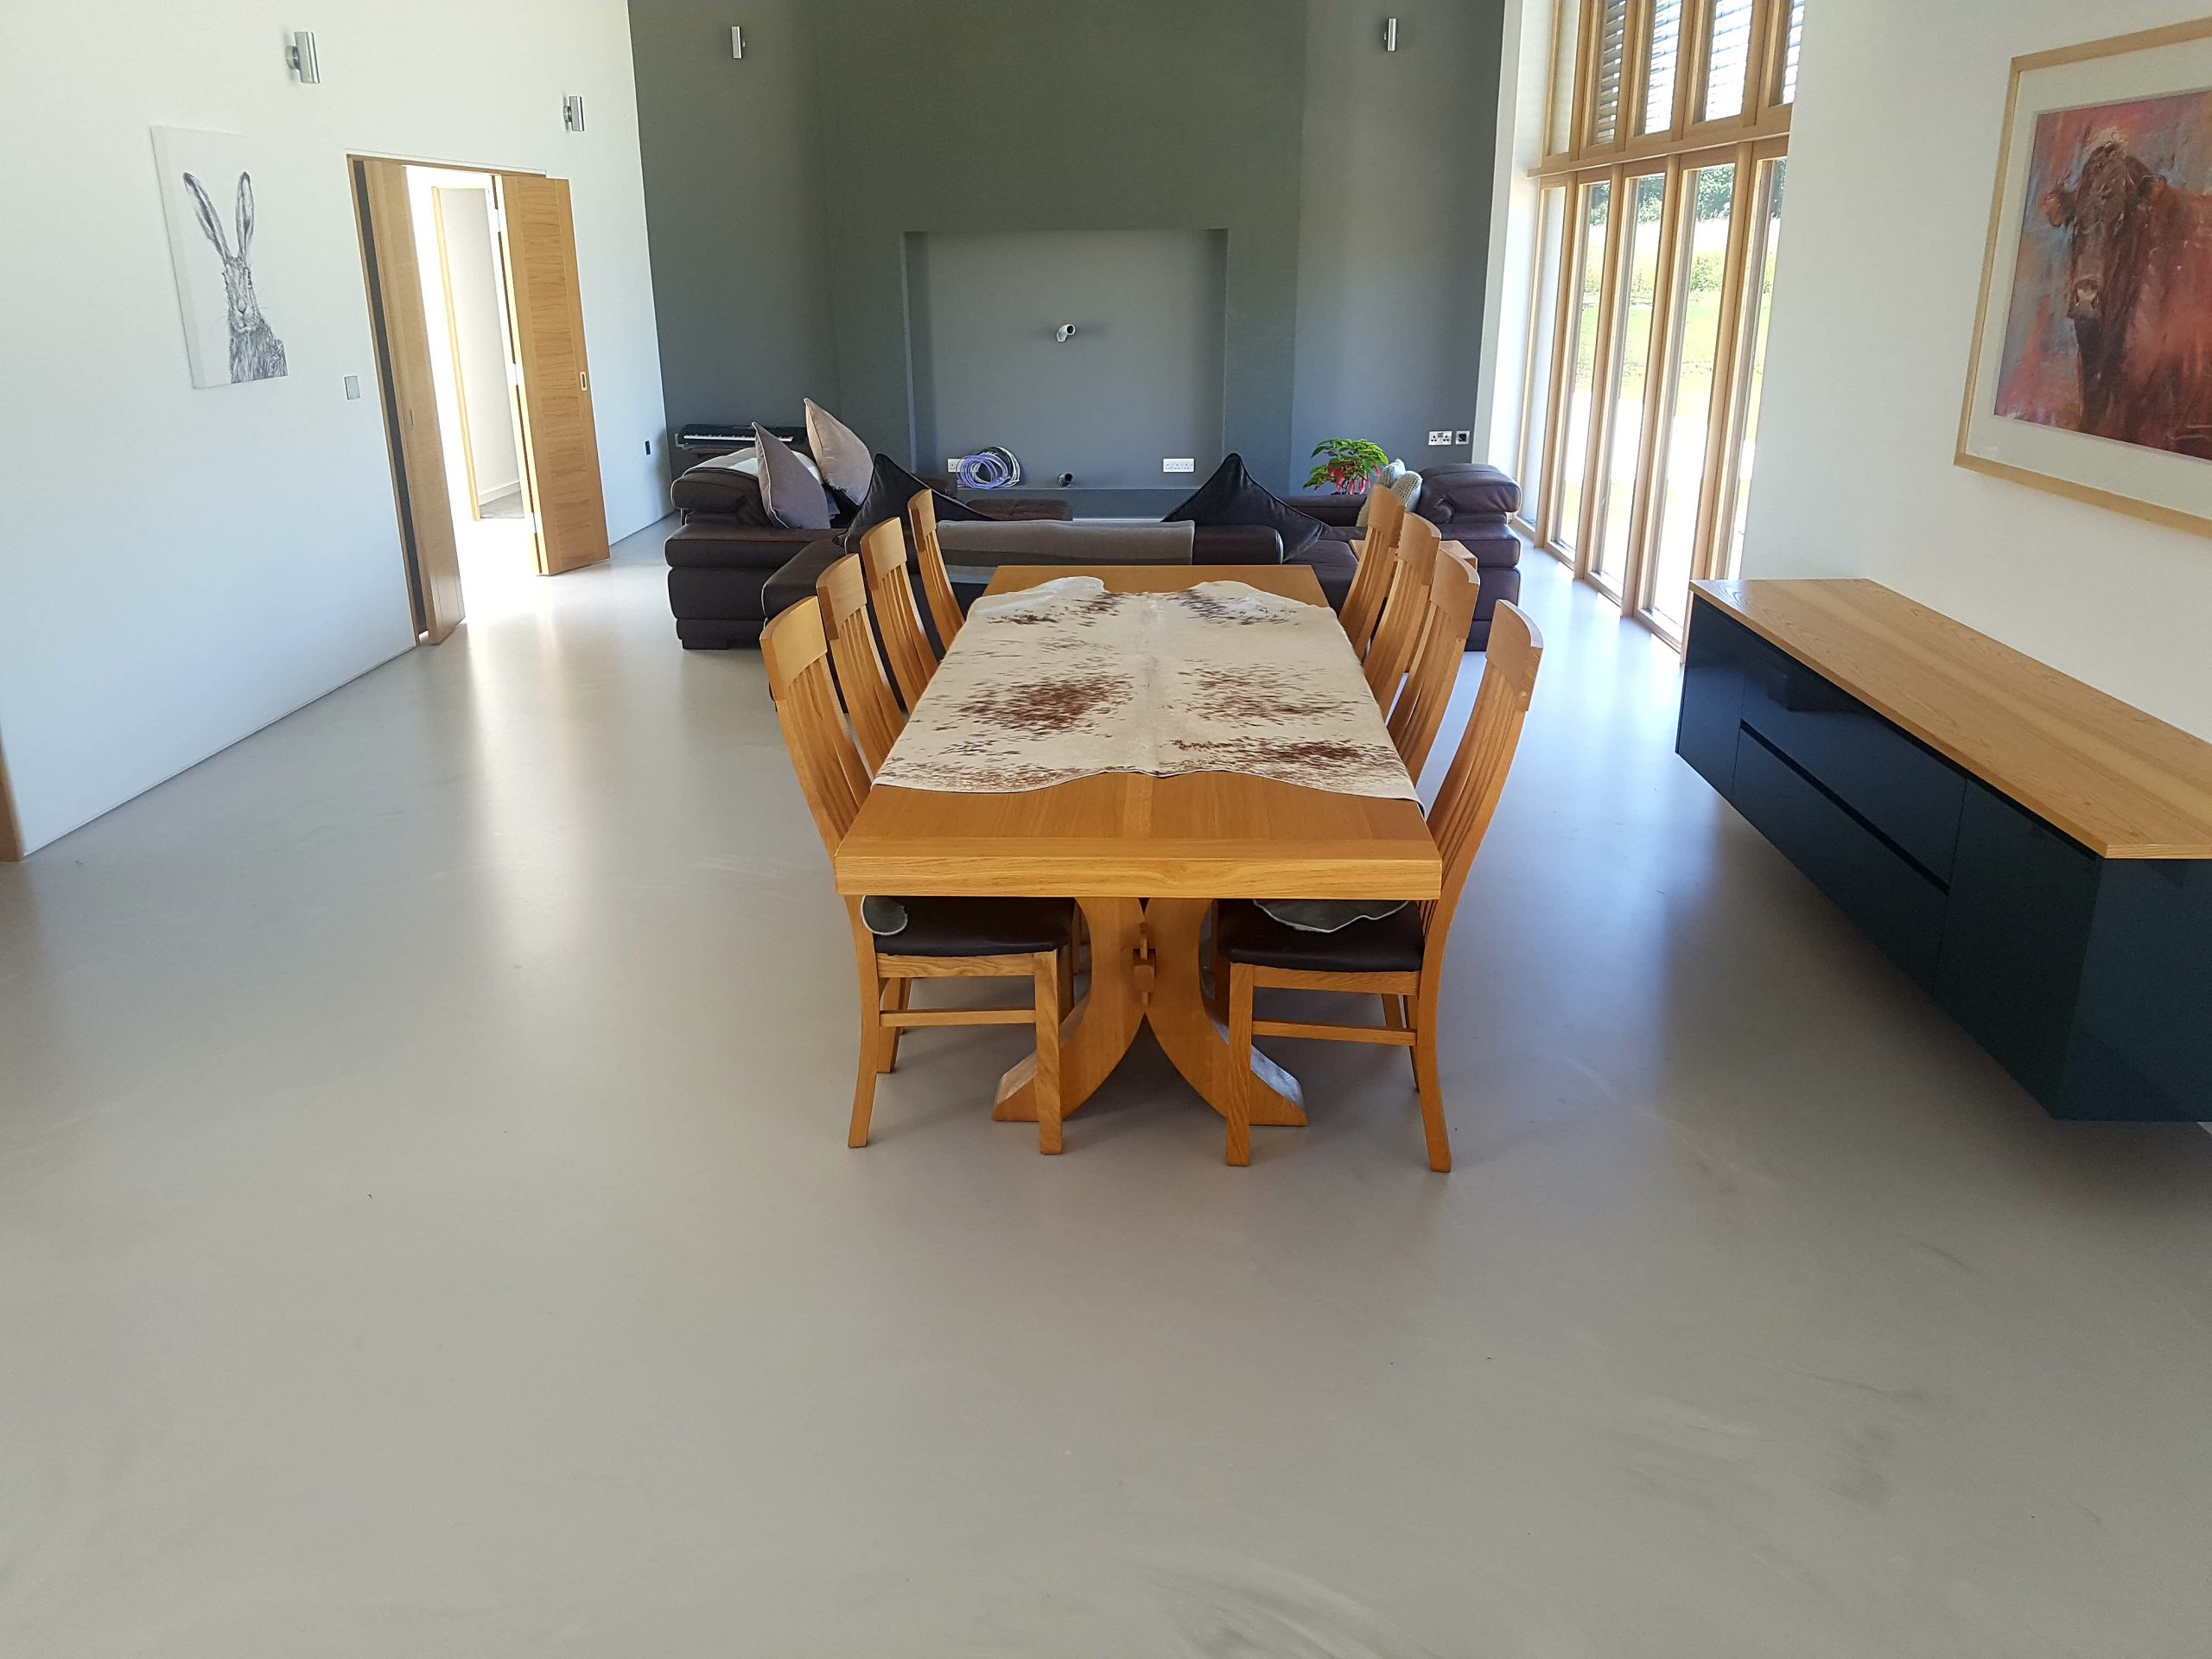 poured resin in a living room